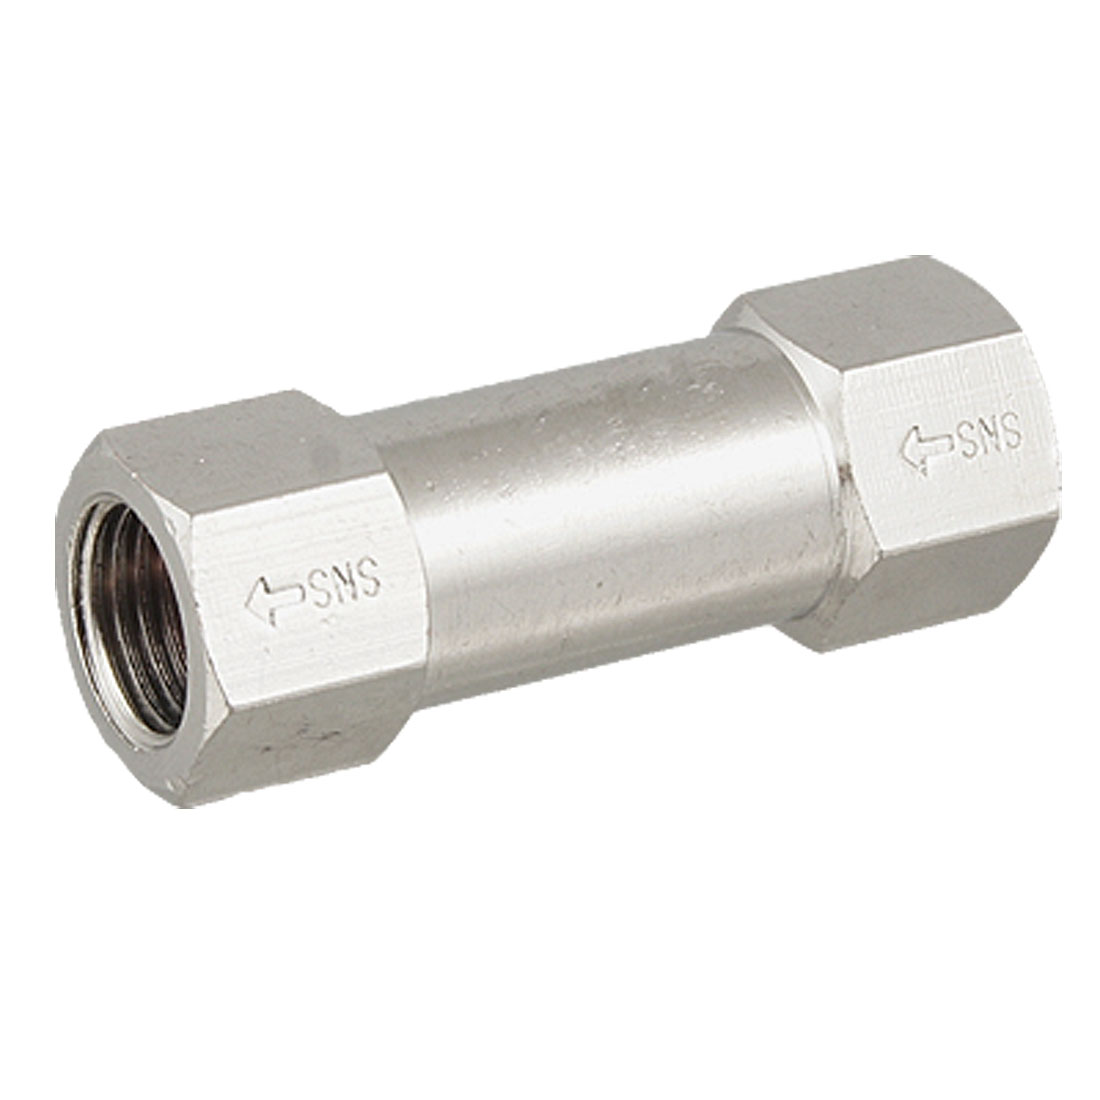 "Silver Tone Metal 0.45"" Threaded Hole Air Water One Way Check Valve"